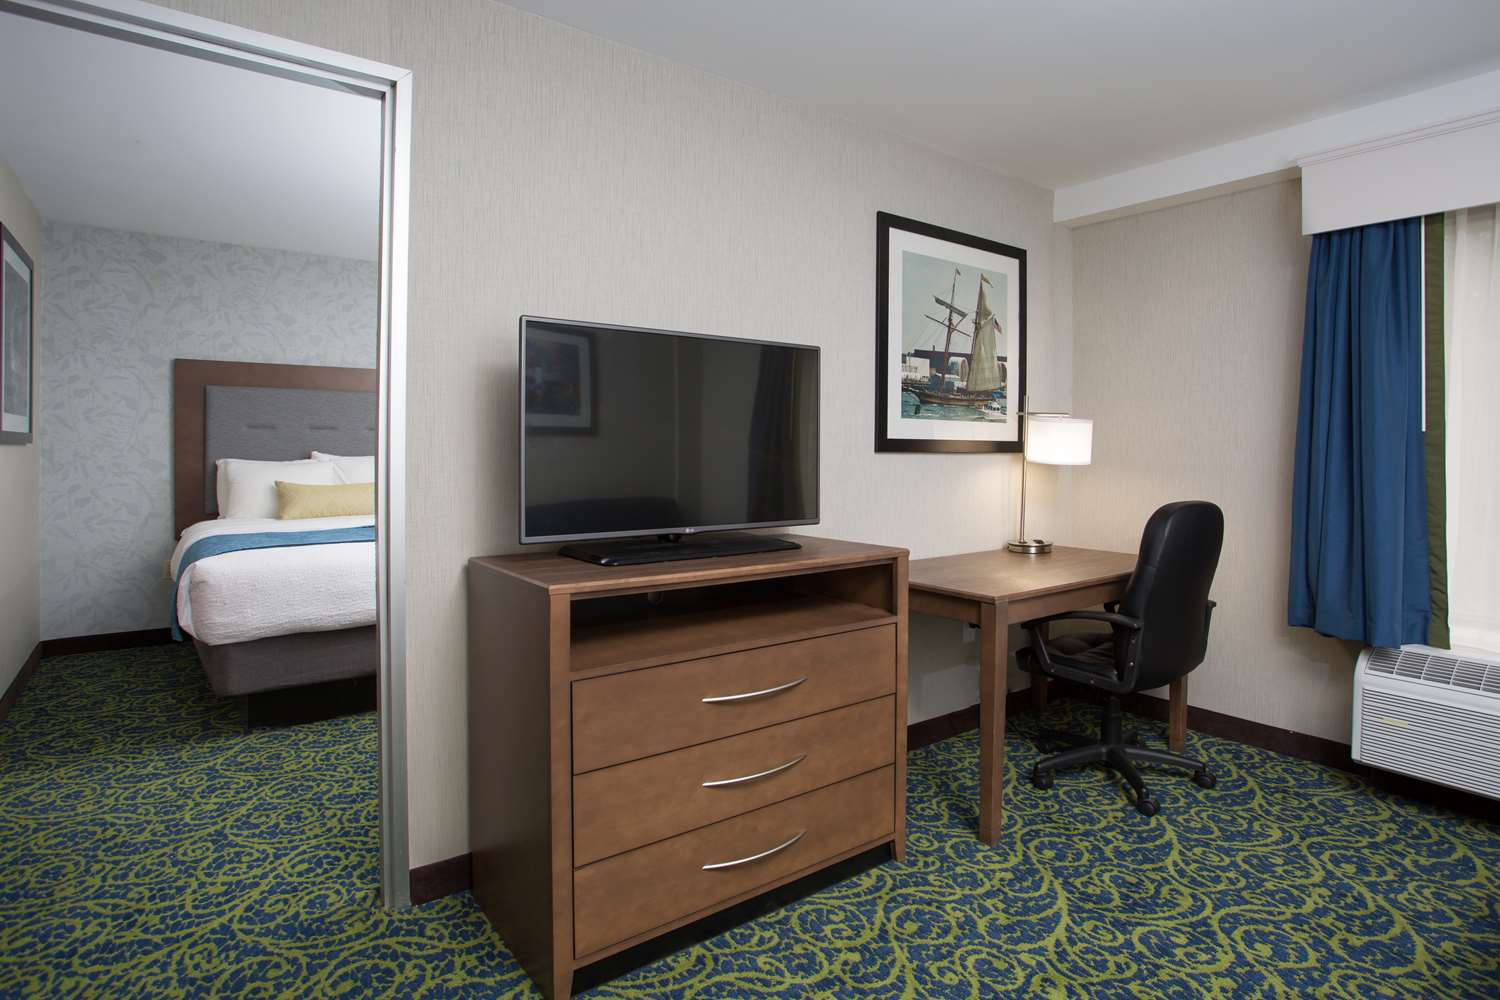 Best Western Plus Portsmouth Hotel and Suites - NH Hotels